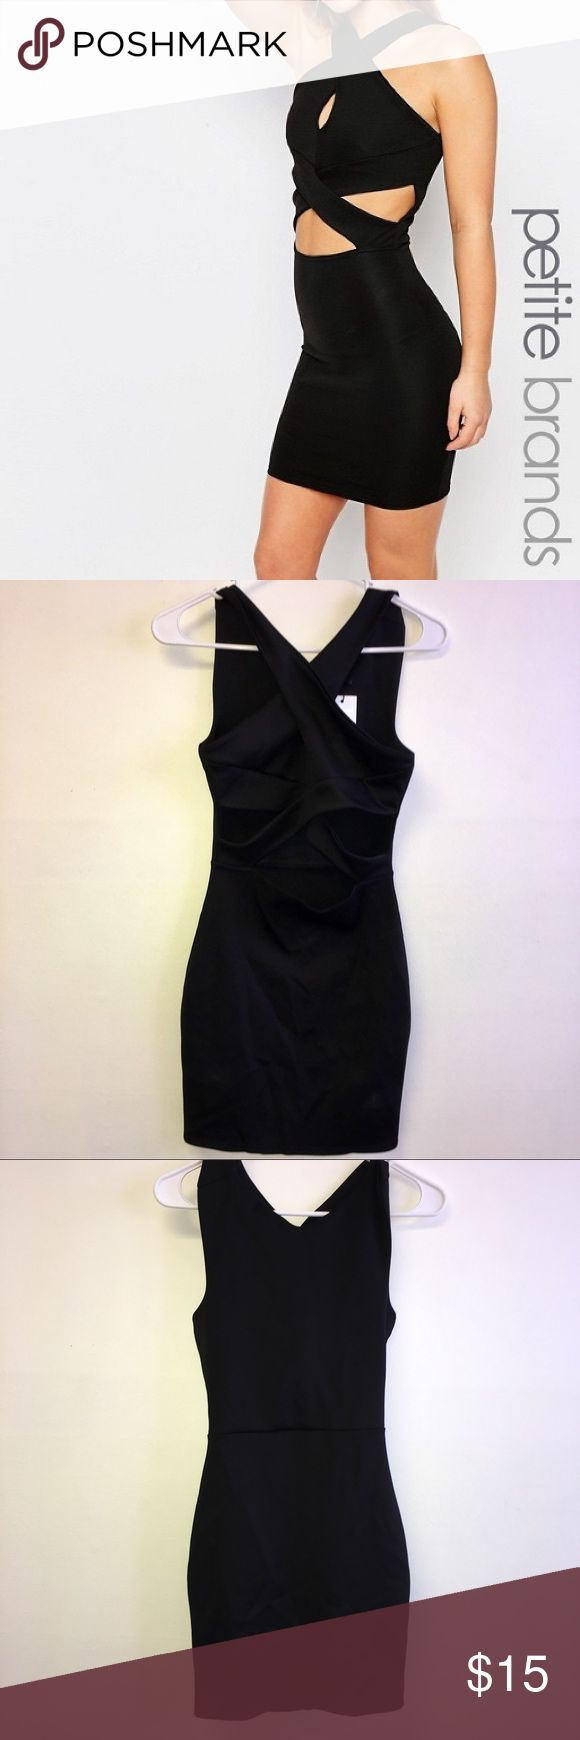 NEW petite bodycon dress Petite bodycon dress never worn before with tags still attached. Dresses Mini